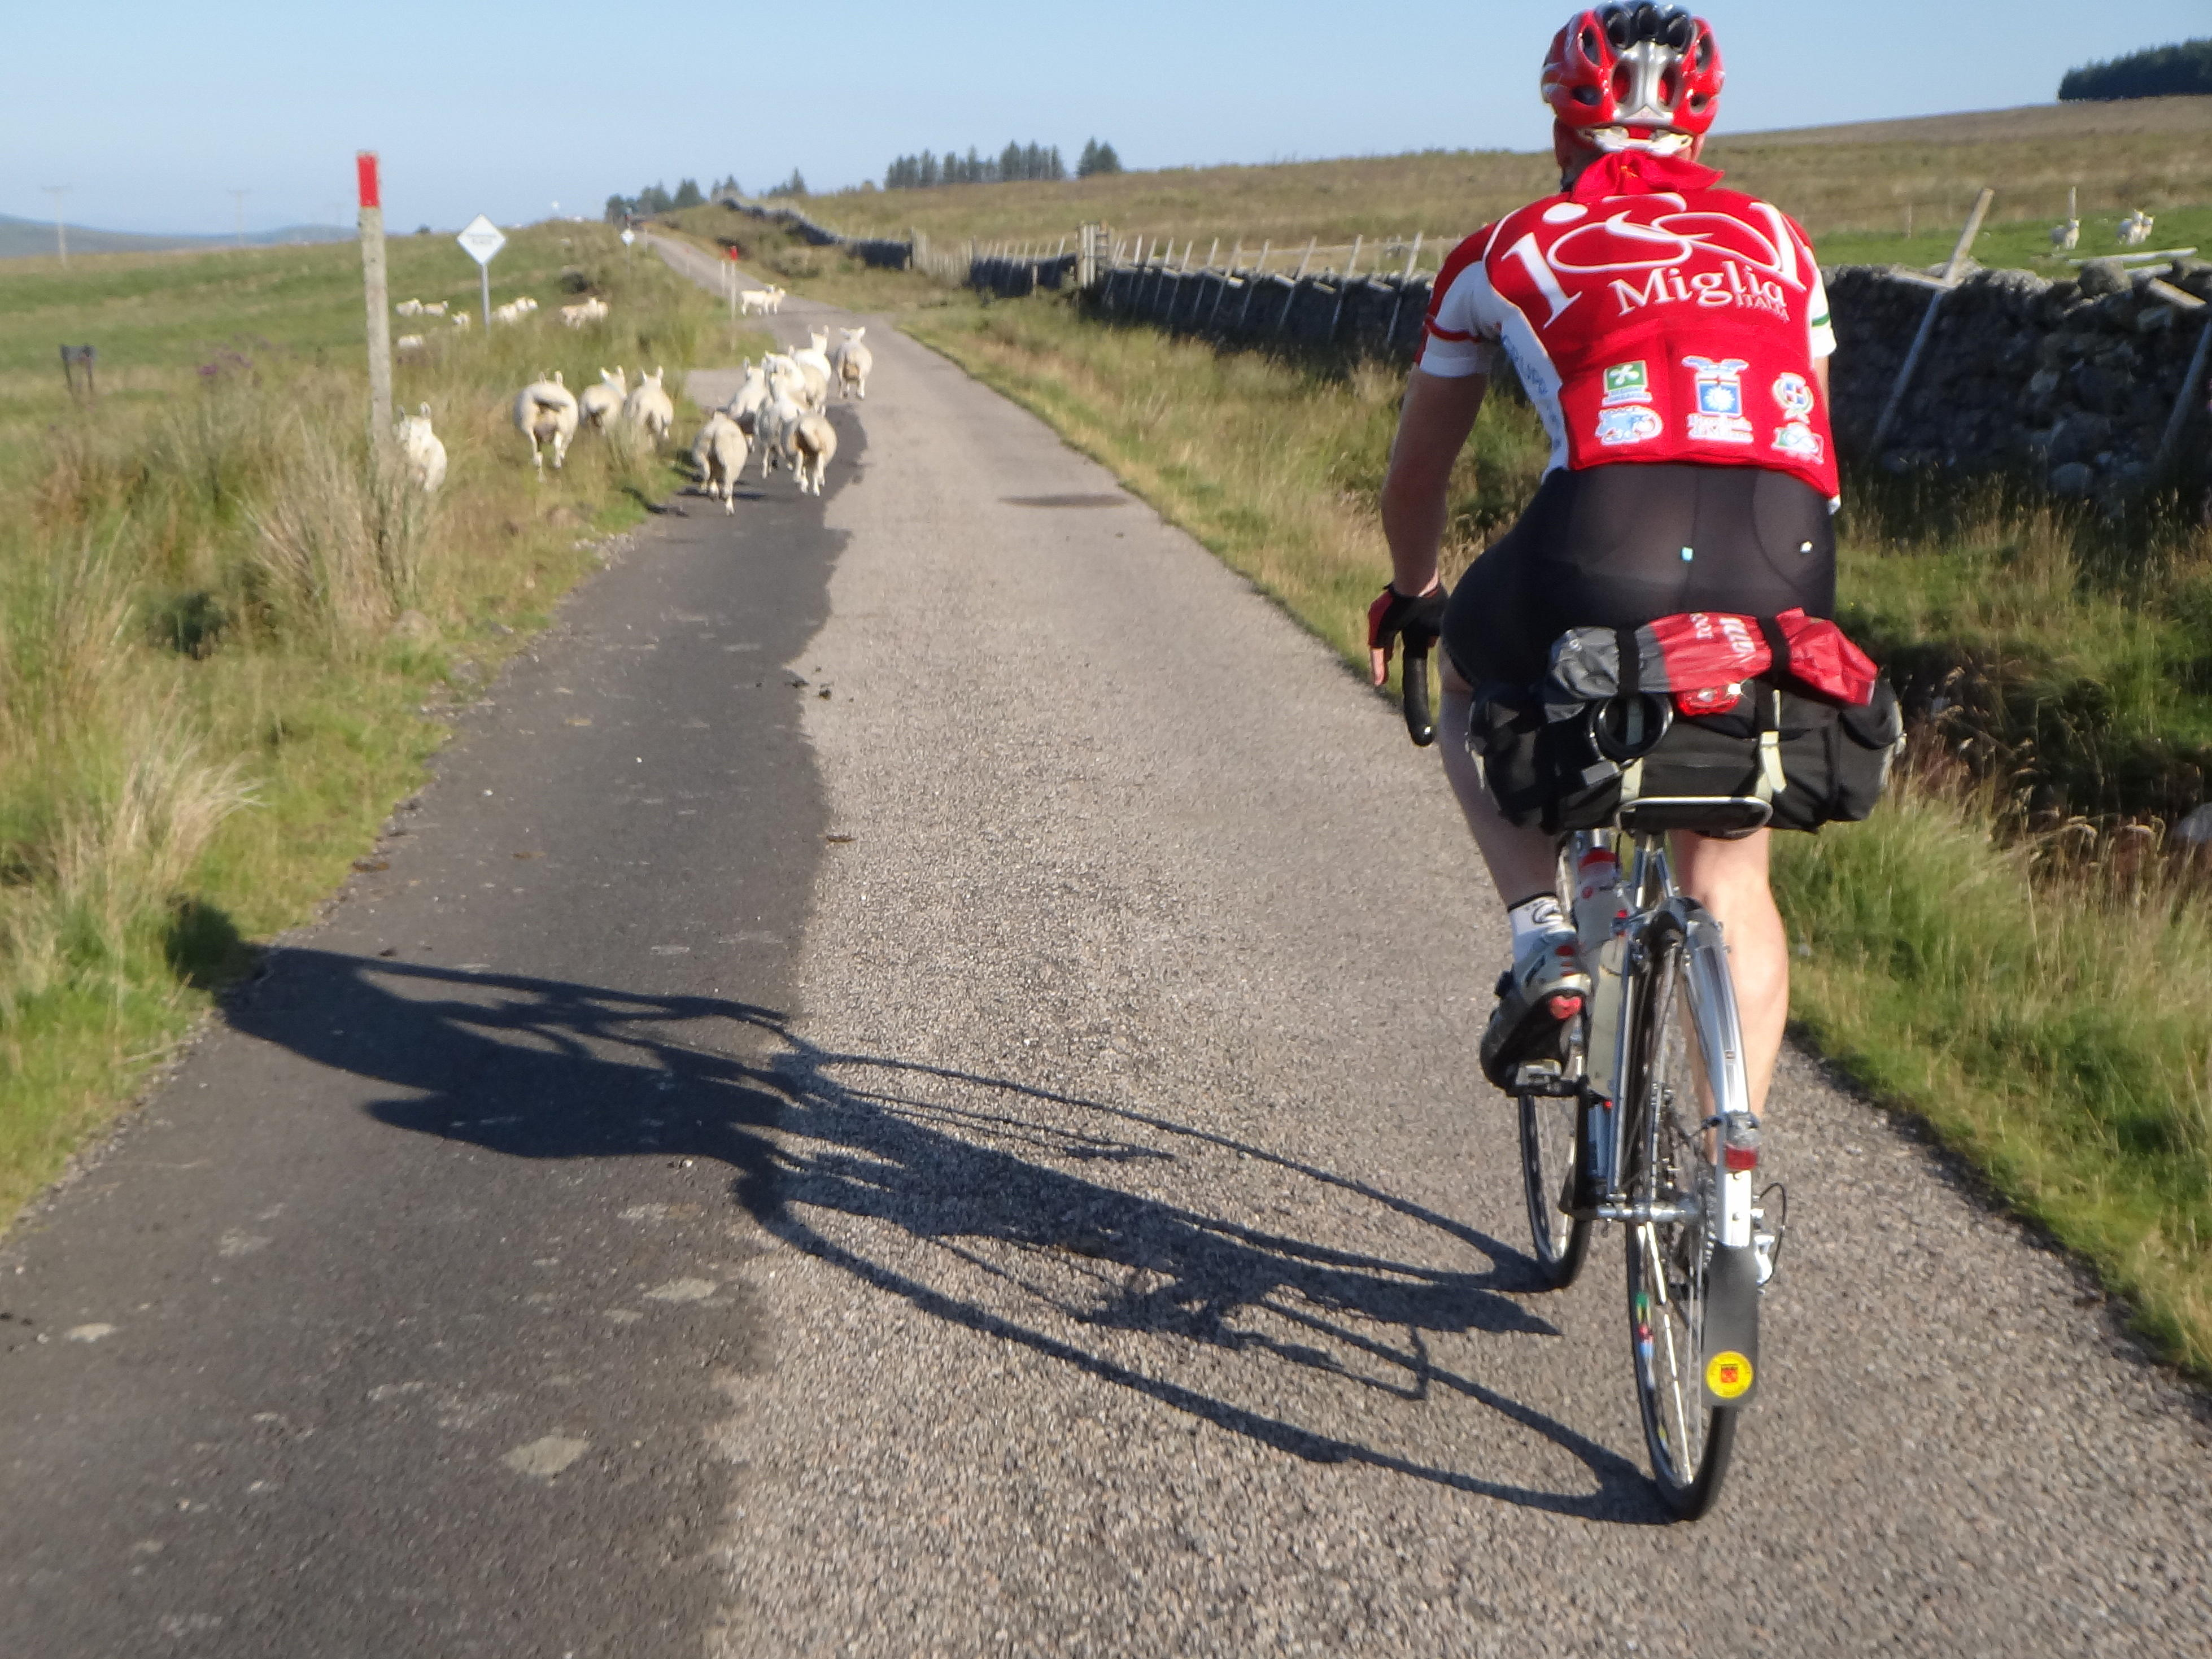 Our sole company for a while: chasing sheep